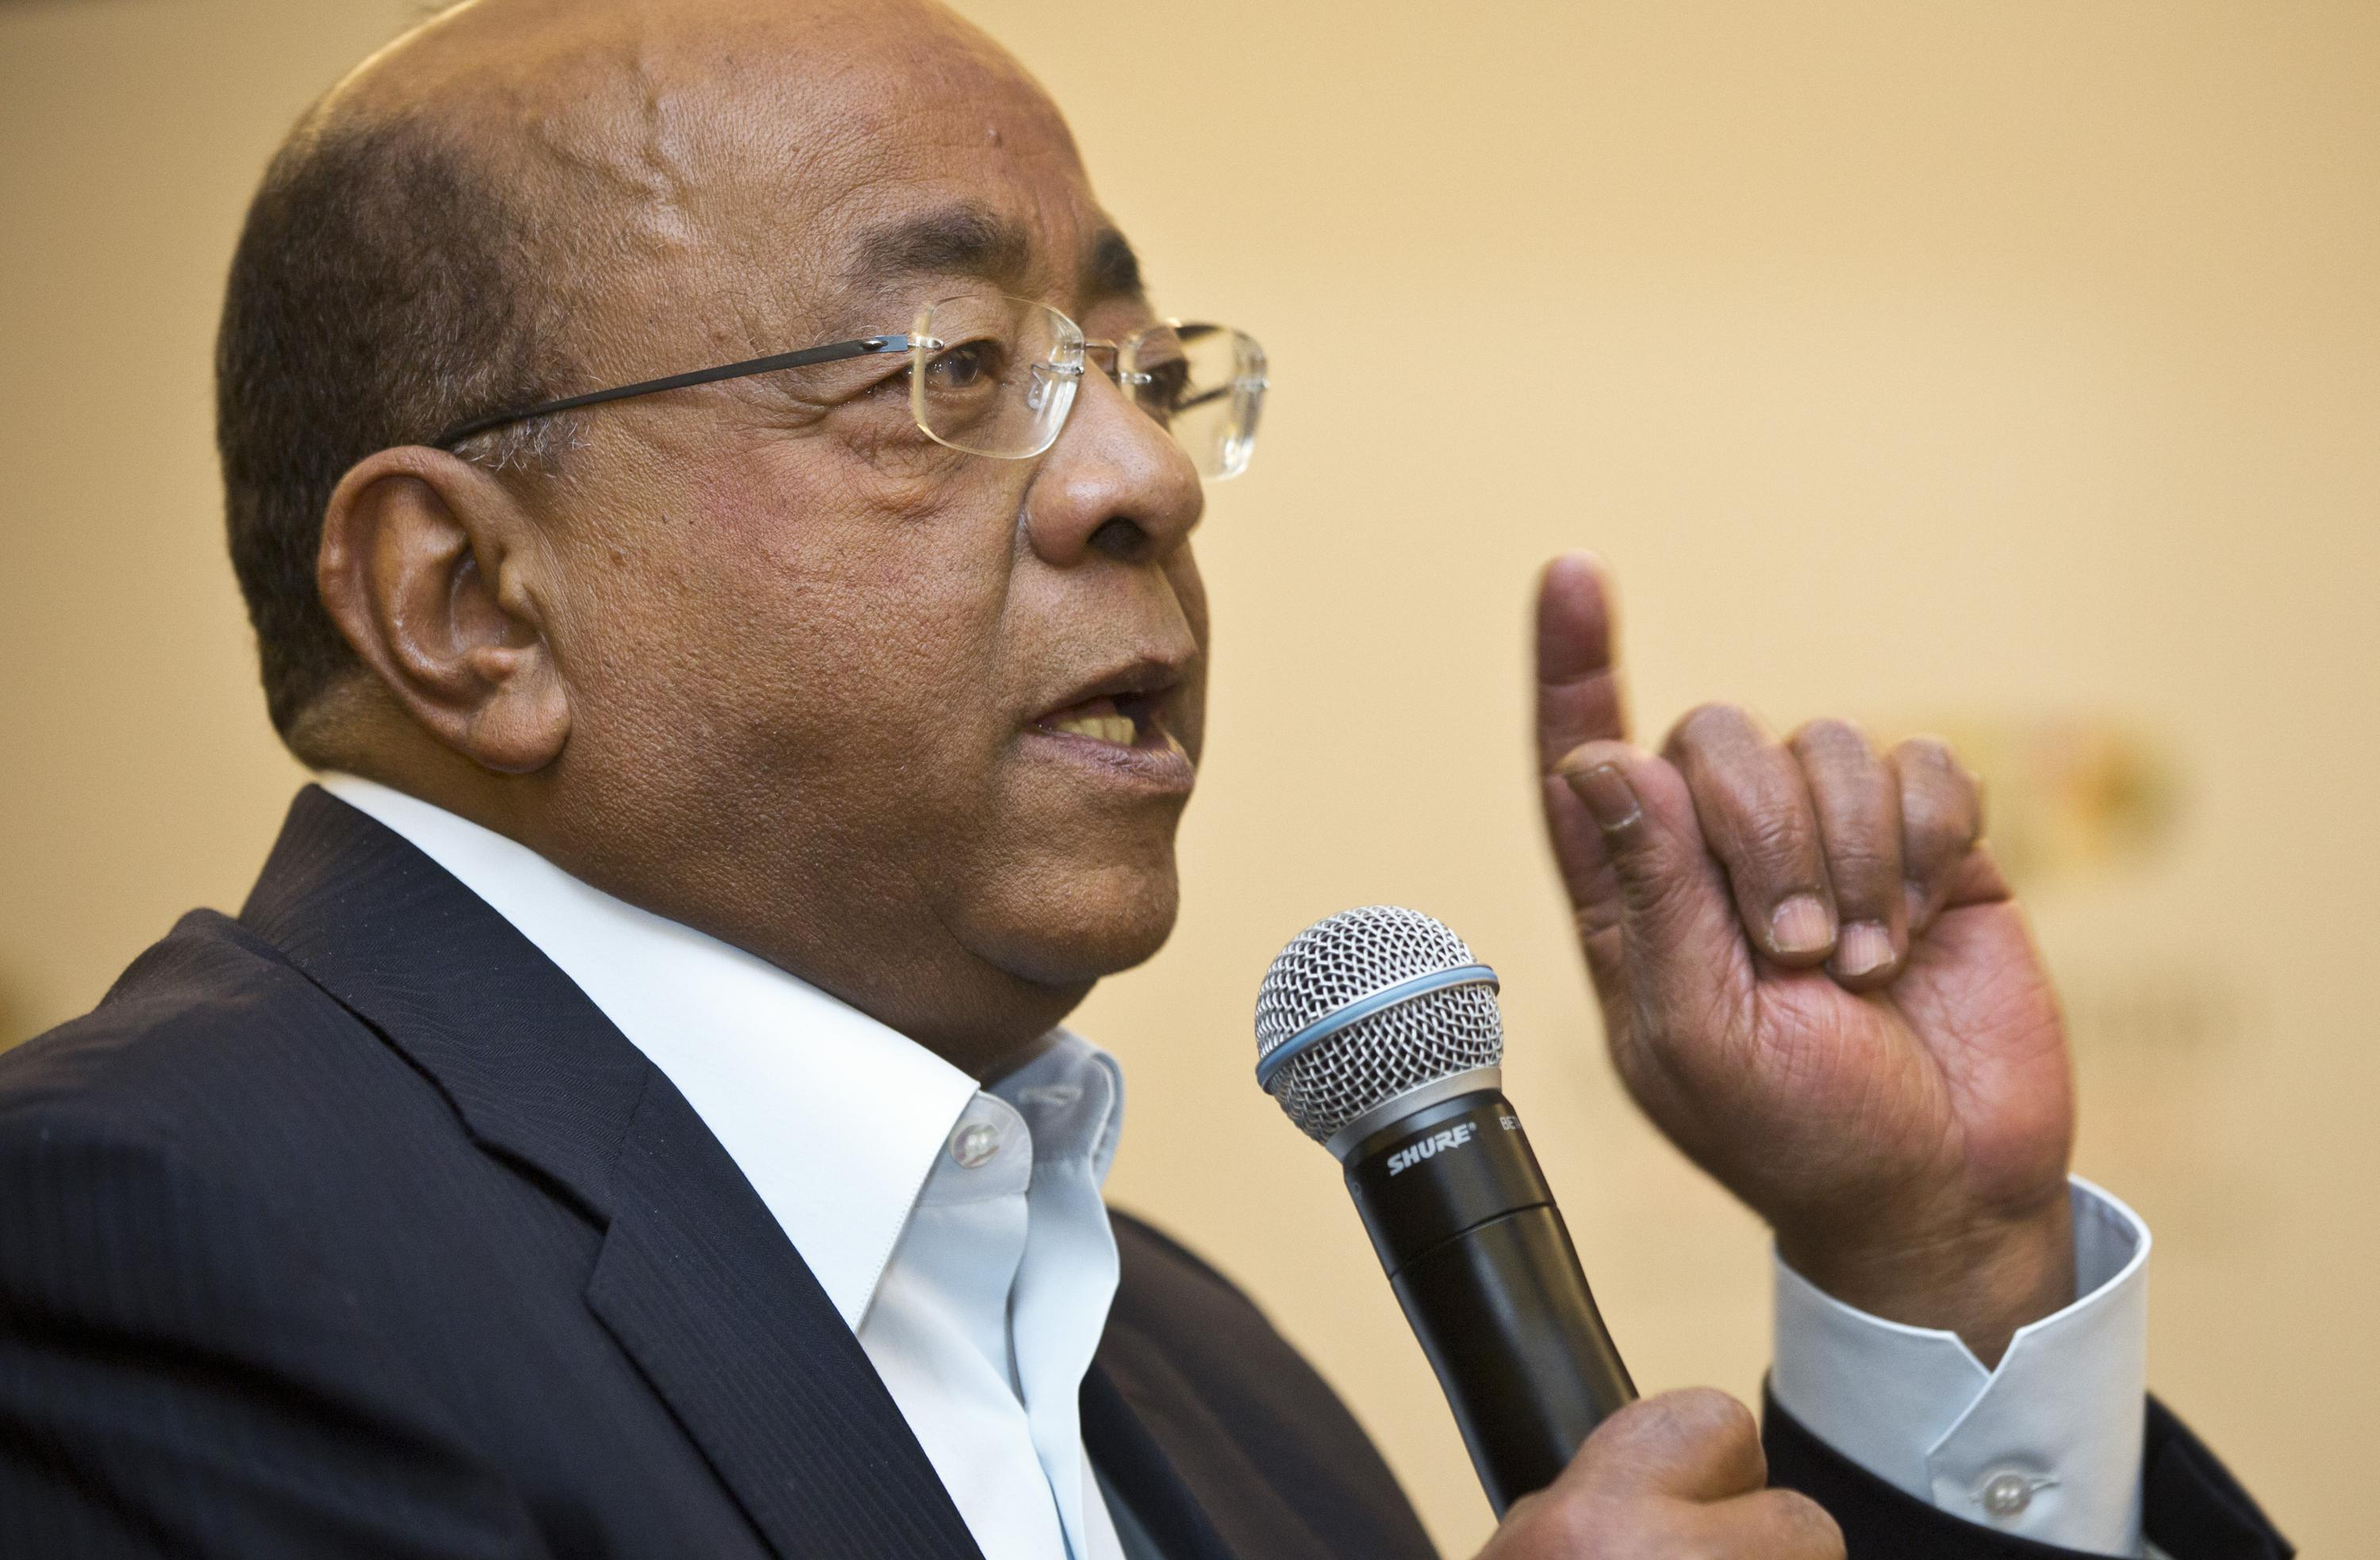 """""""Walk the Talk"""": Philanthropist Mo Ibrahim Harshly Criticizes Wealthy Nations for Hoarding COVID-19 Vaccines"""